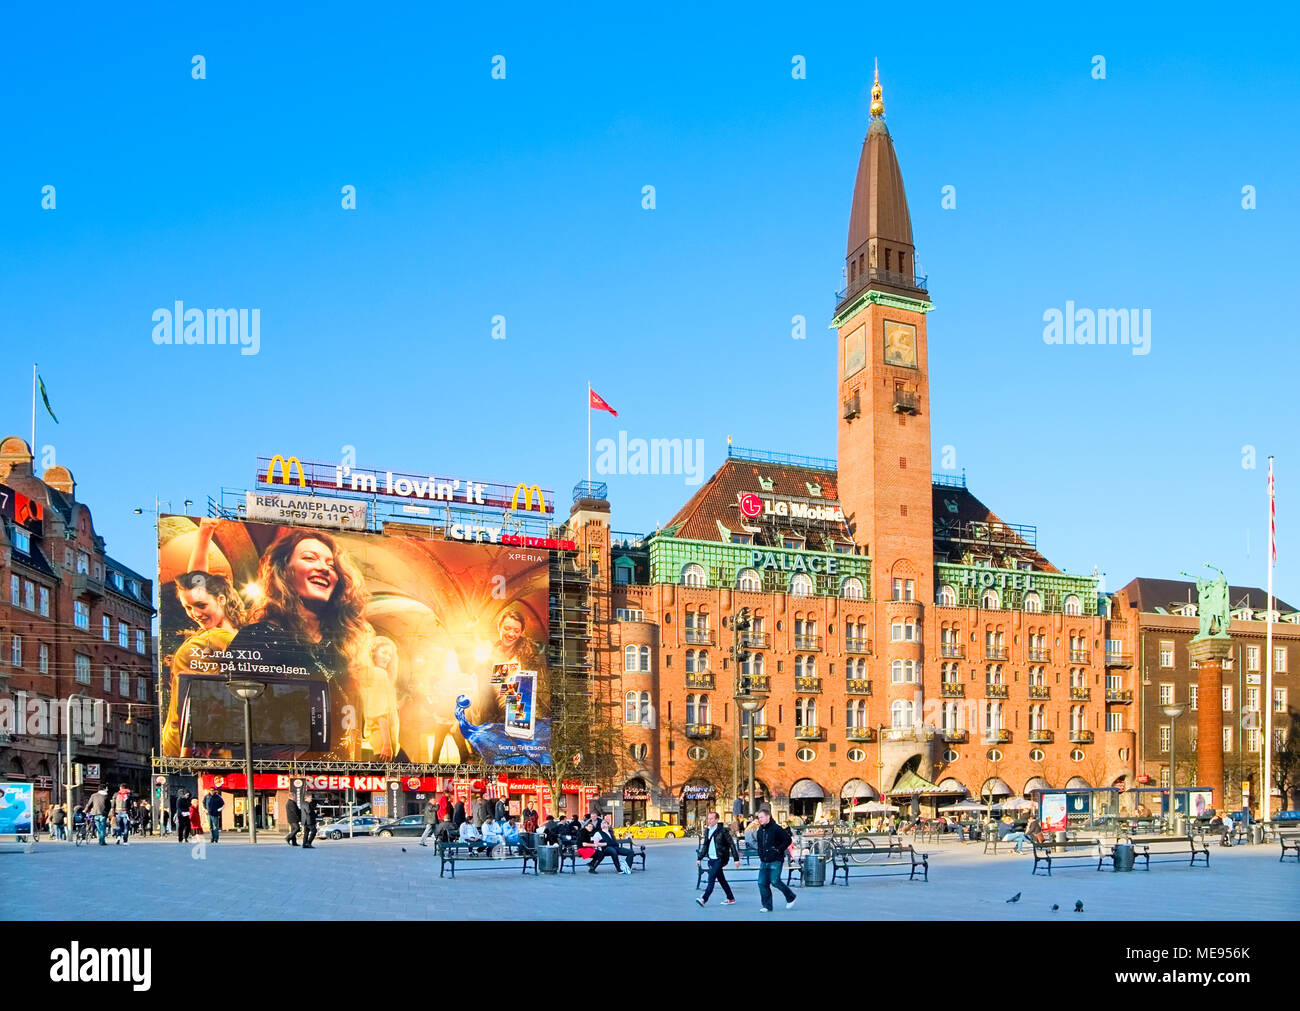 COPENHAGEN, DENMARK - APRIL 13, 2010: Scandic Palace Hotel on the City Hall Square. Was built in 1910. - Stock Image